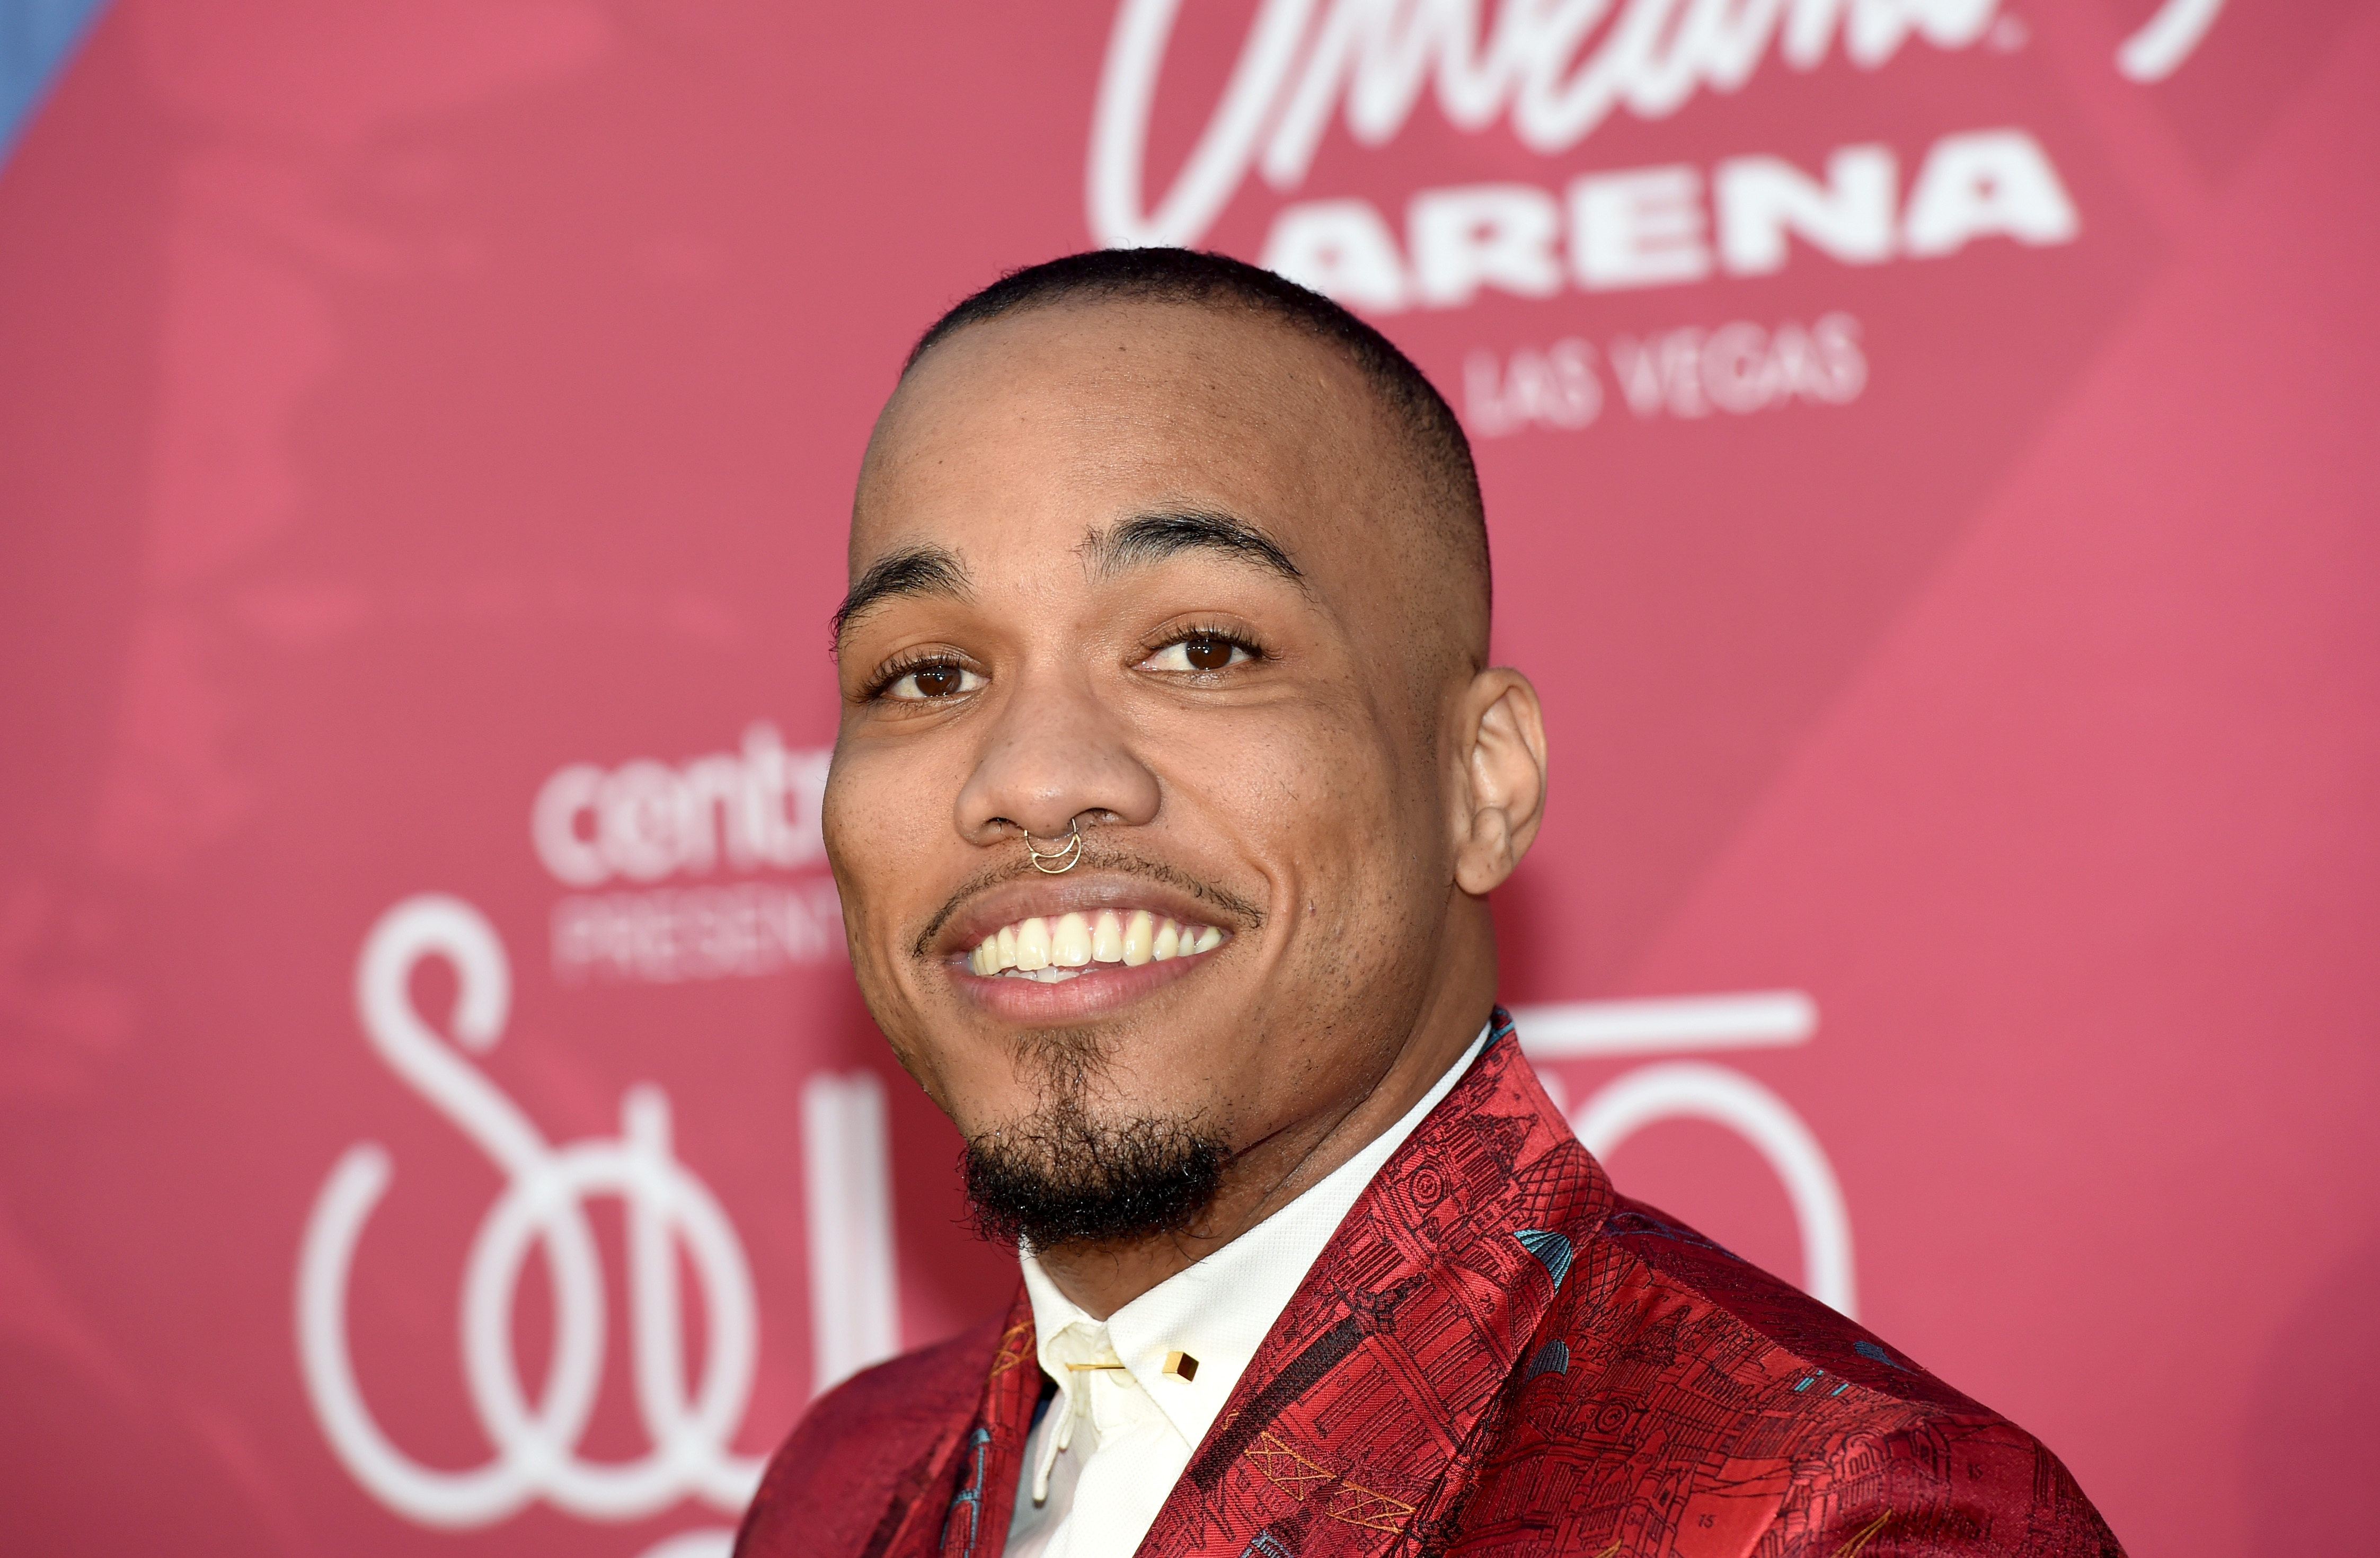 Anderson .Paak at the Soul Train Music Awards on November 6, 2016 in Las Vegas, Nevada. (Photo by Ethan Miller/Getty)